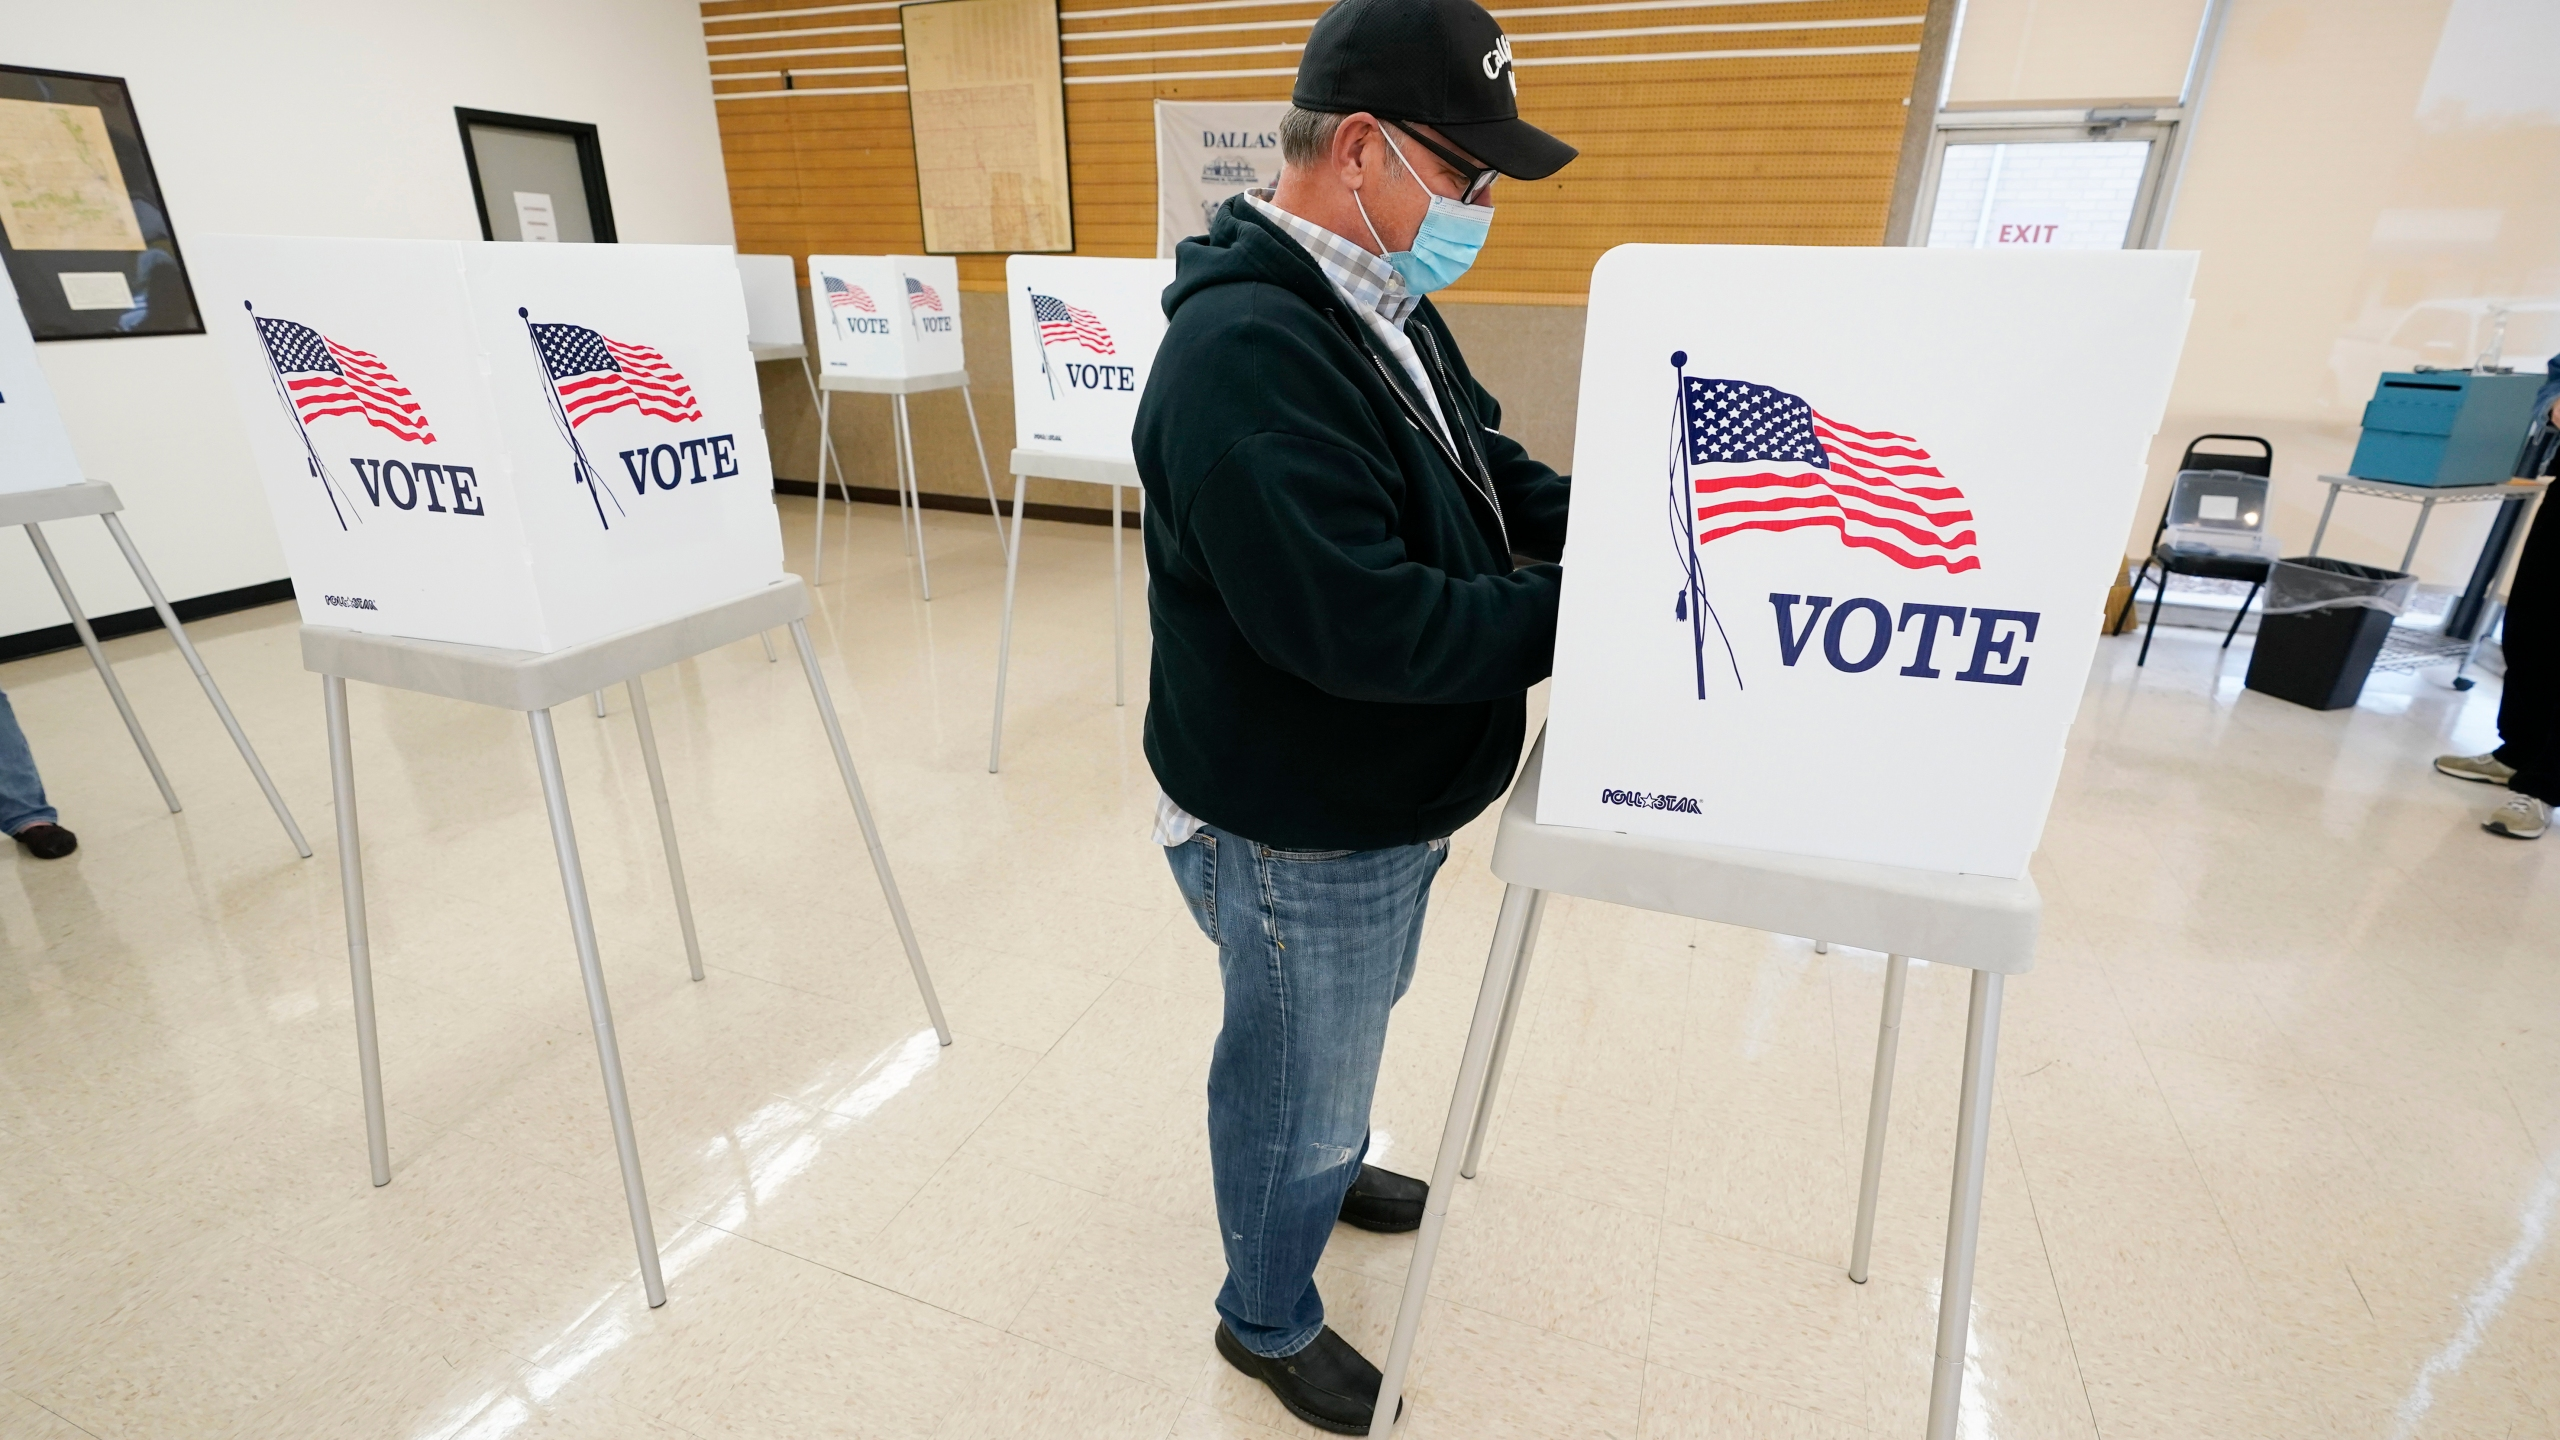 Albany County prepares for thousands of voters on Election Day